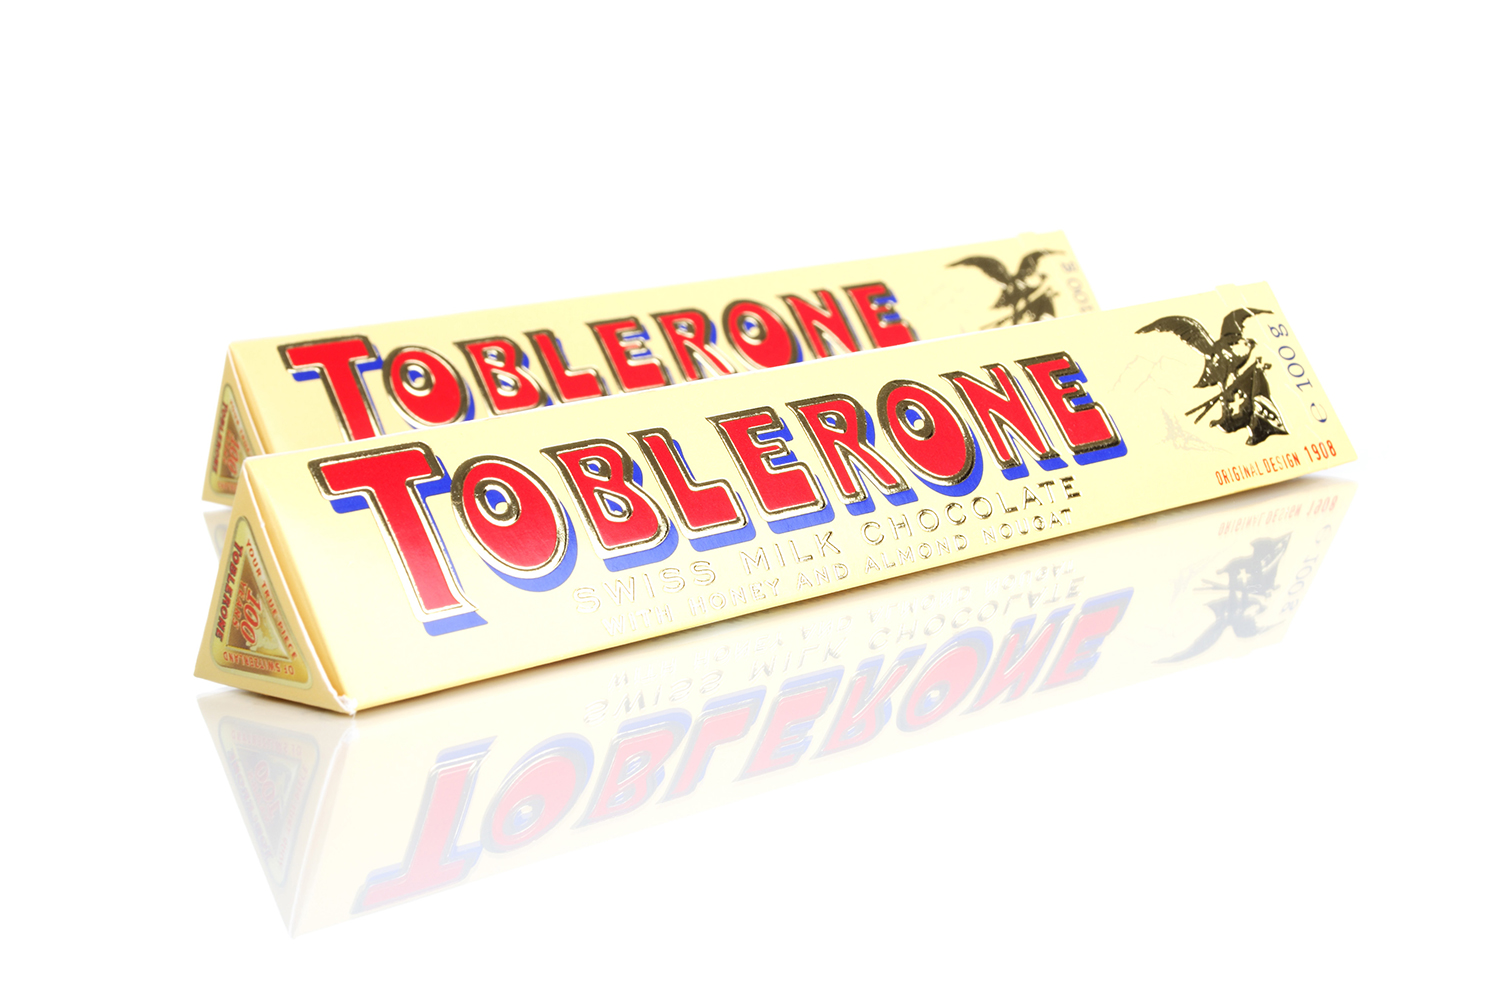 Toblerone Changing Shape and People Are Not Happy